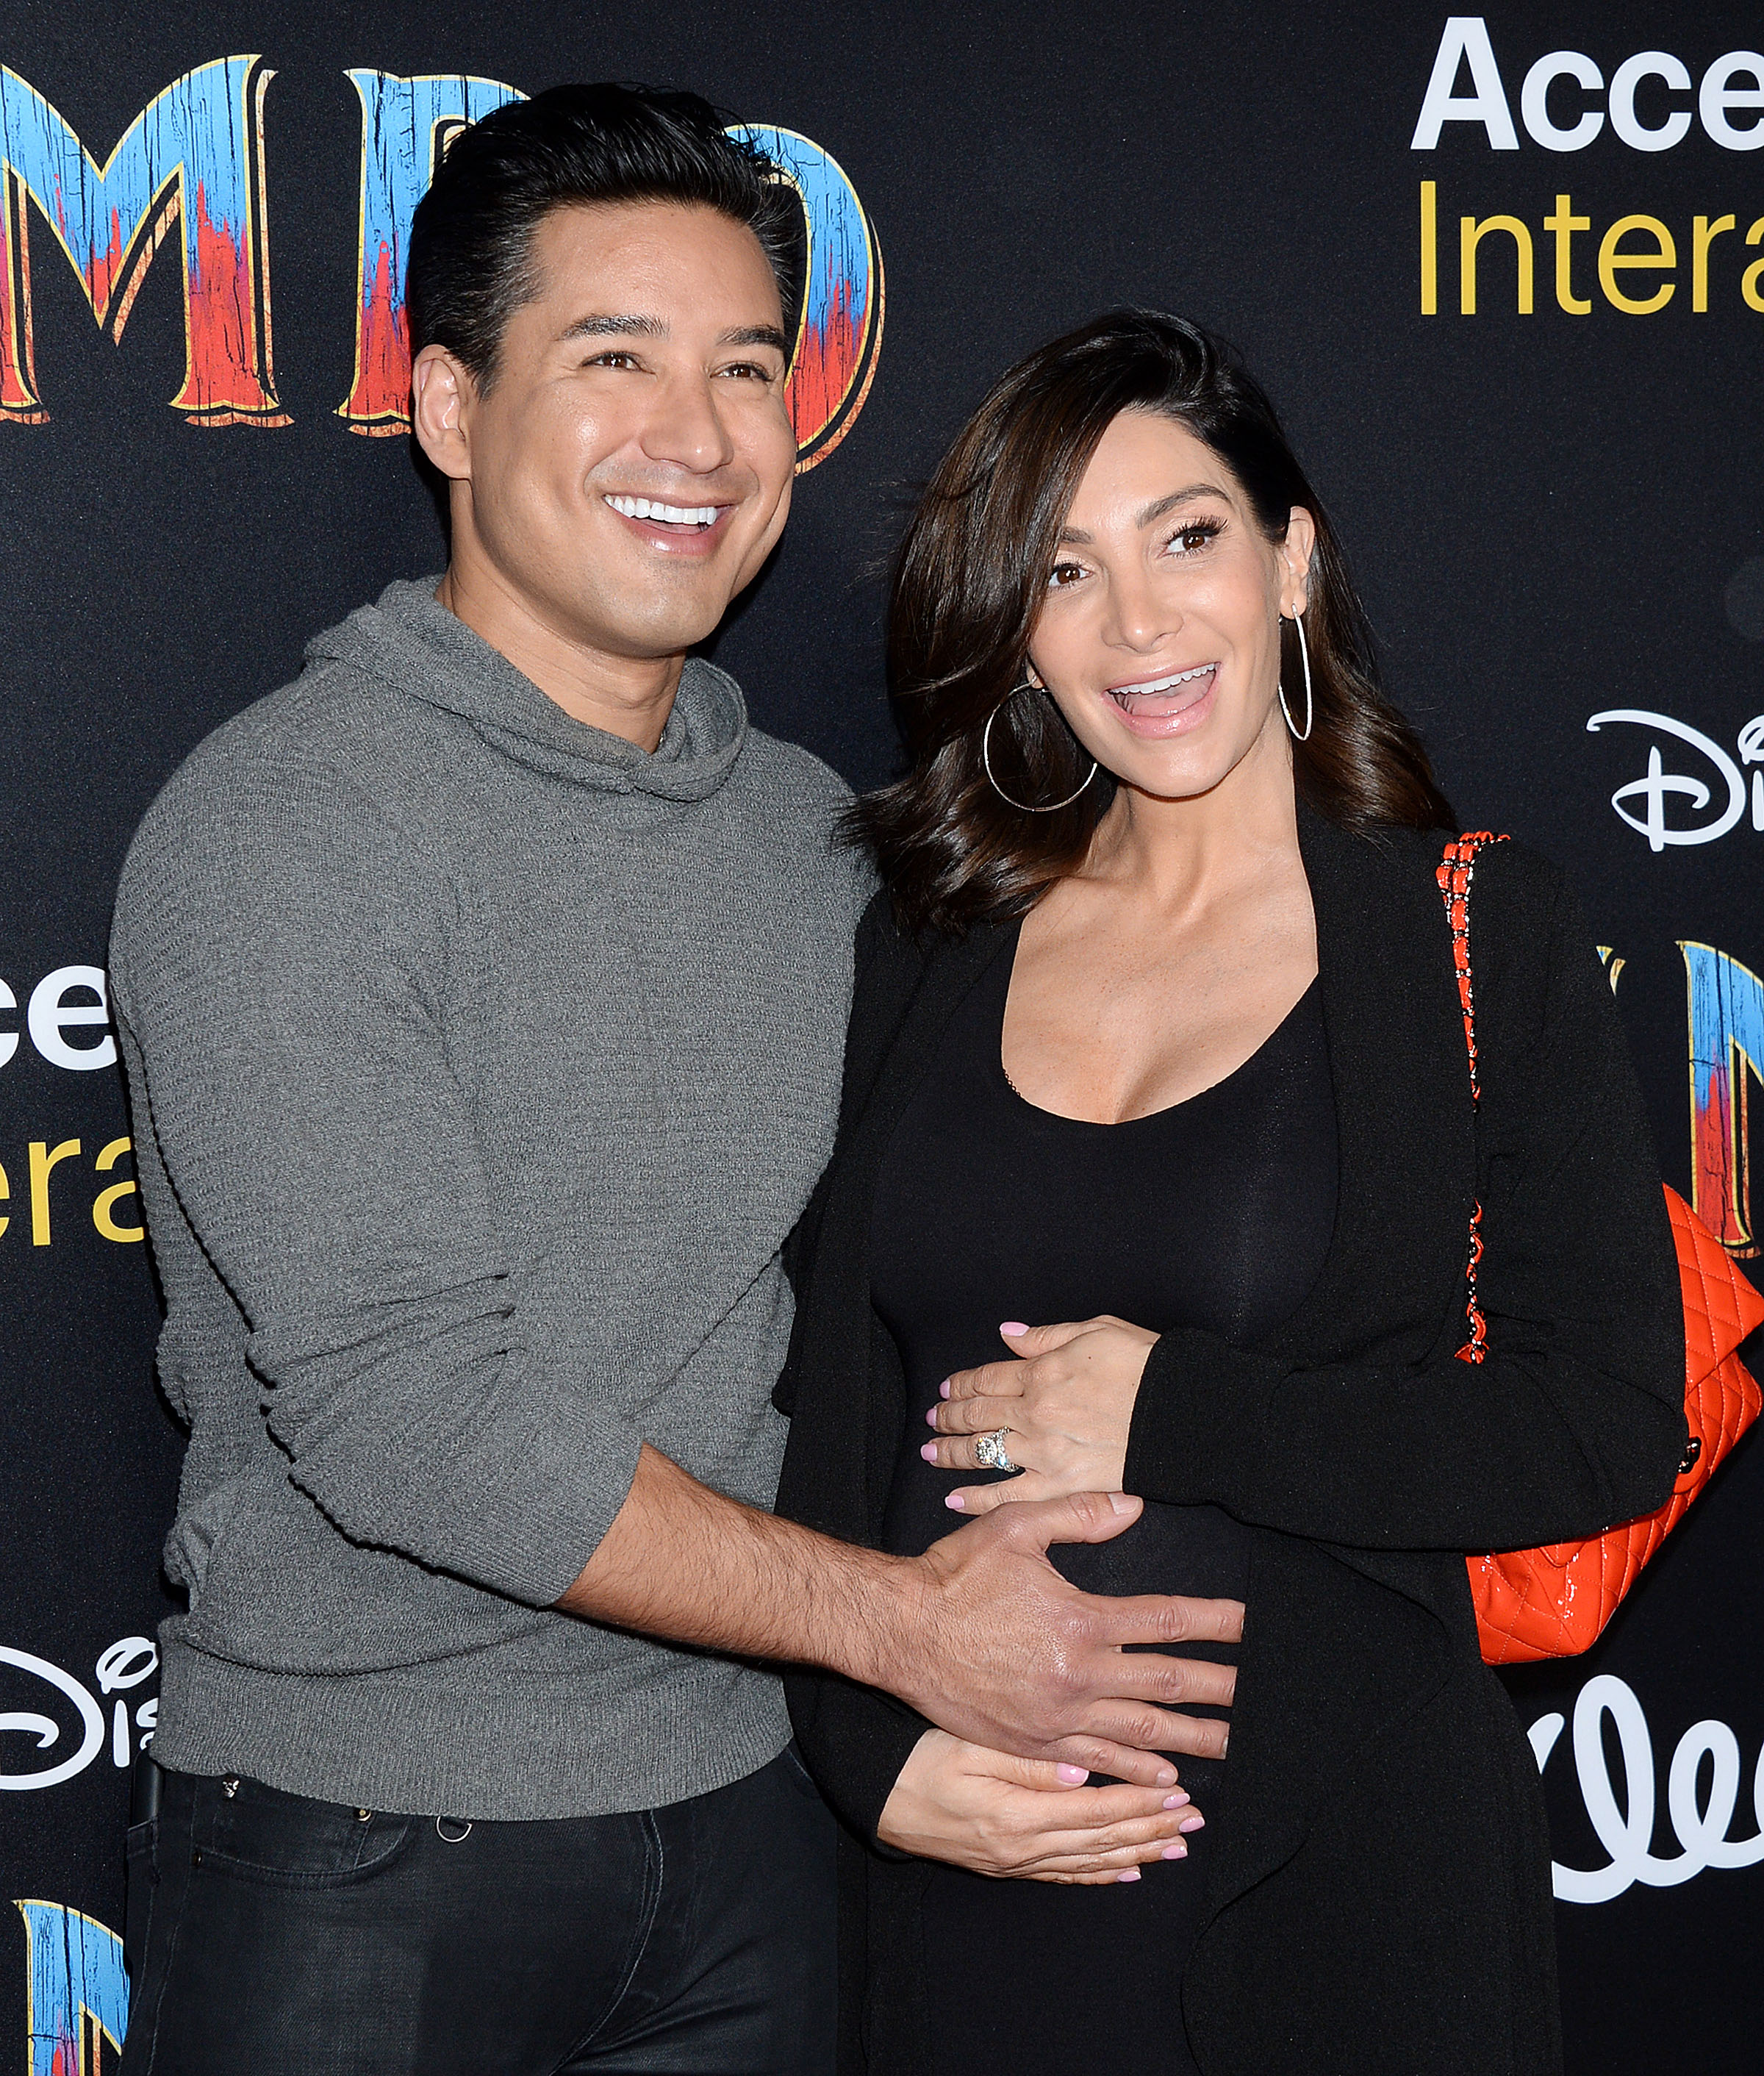 Mario Lopez S Wife Courtney Leaves Flirty Comment On Shirtless Photo